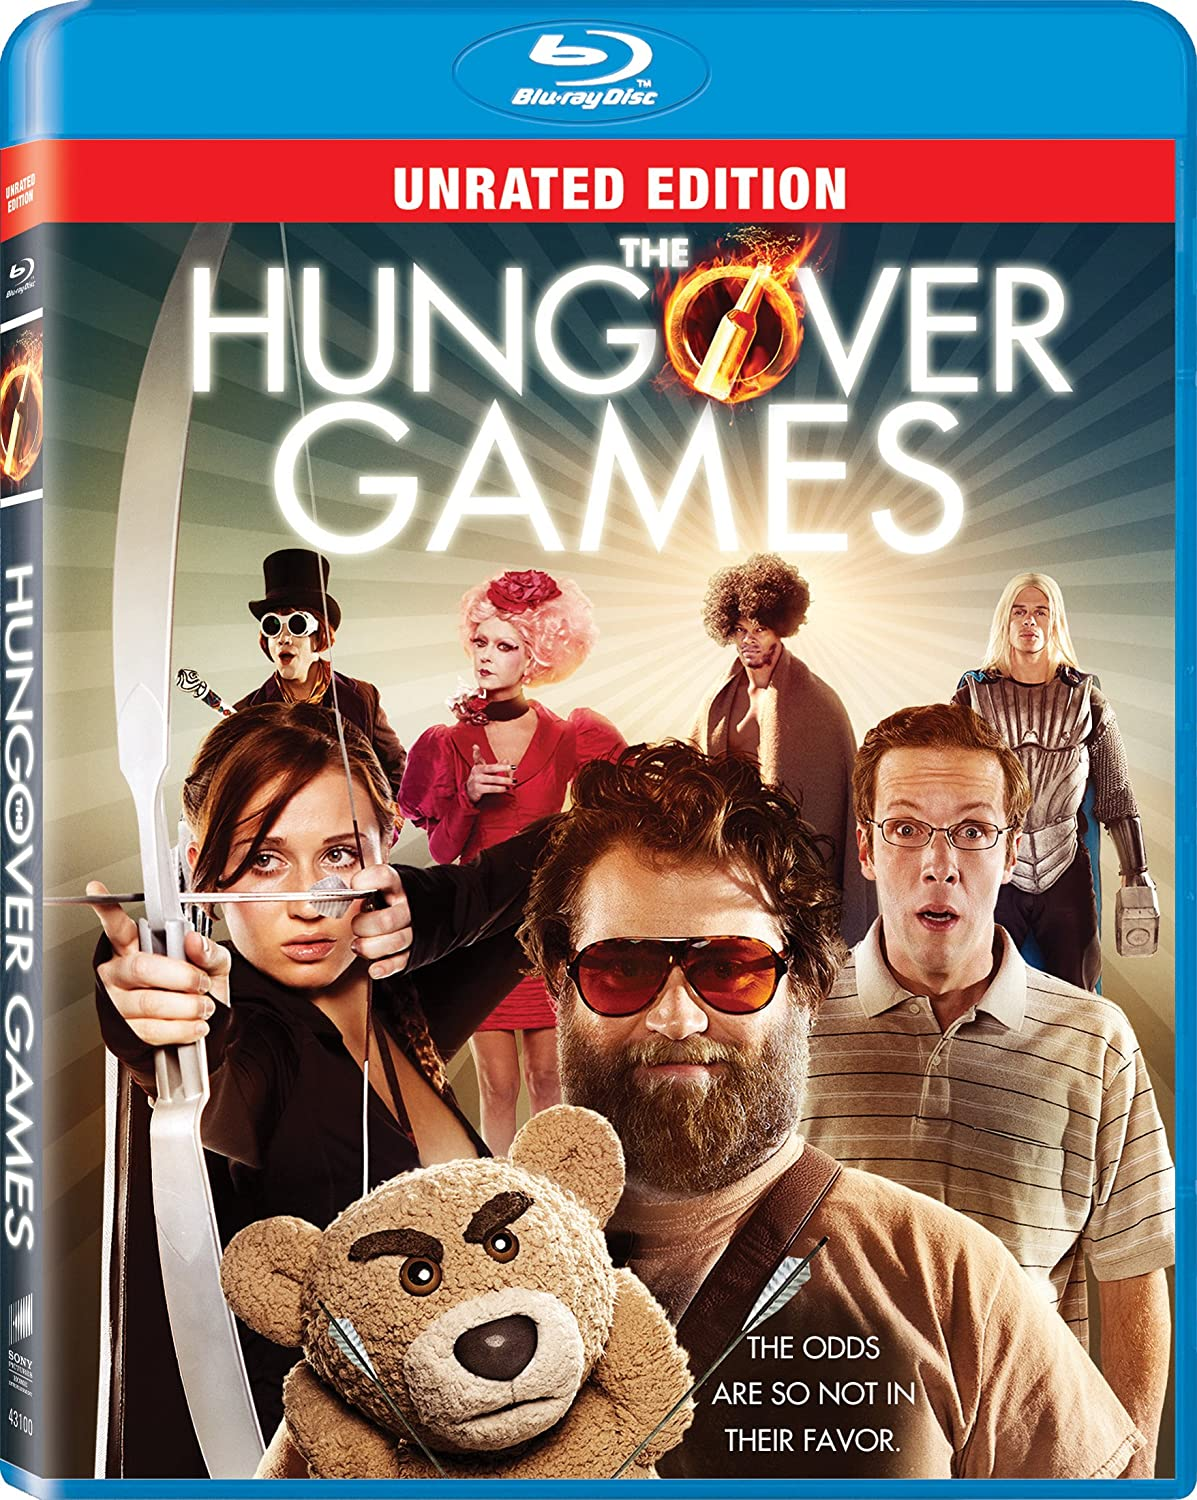 Game Blu Games Unrated Blu-ray